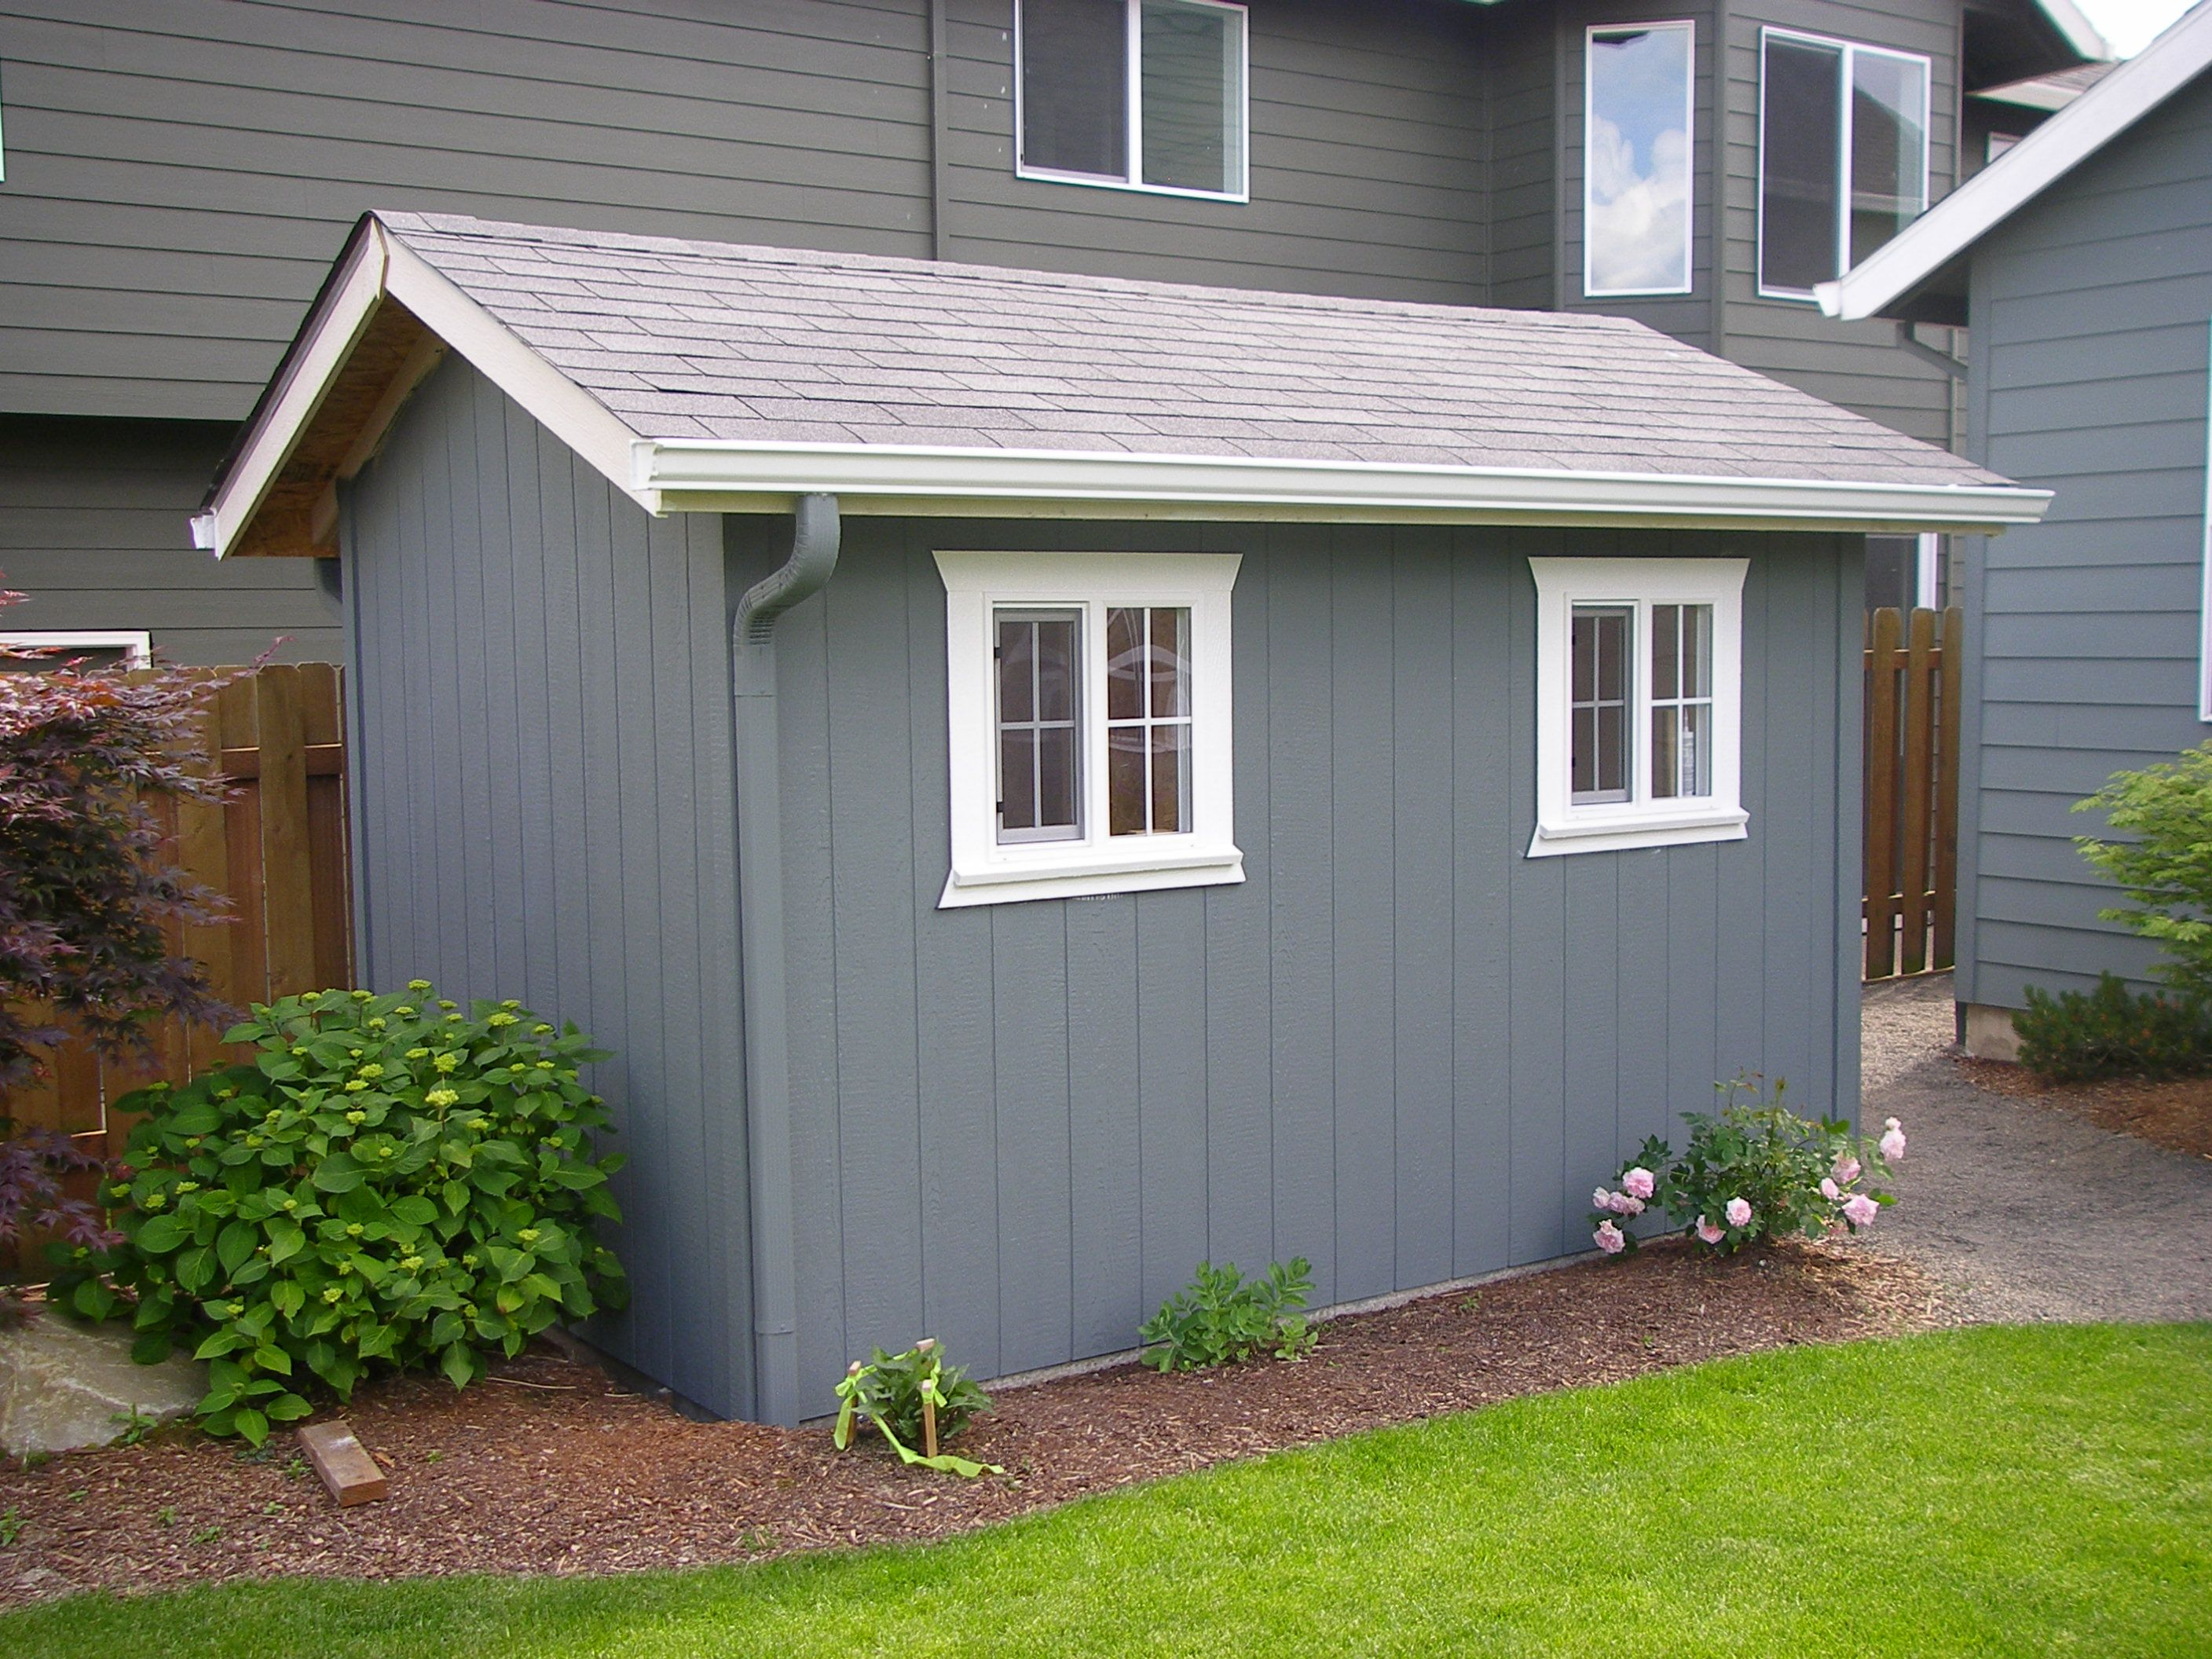 heritage style backyard custom built garden shed mother in law